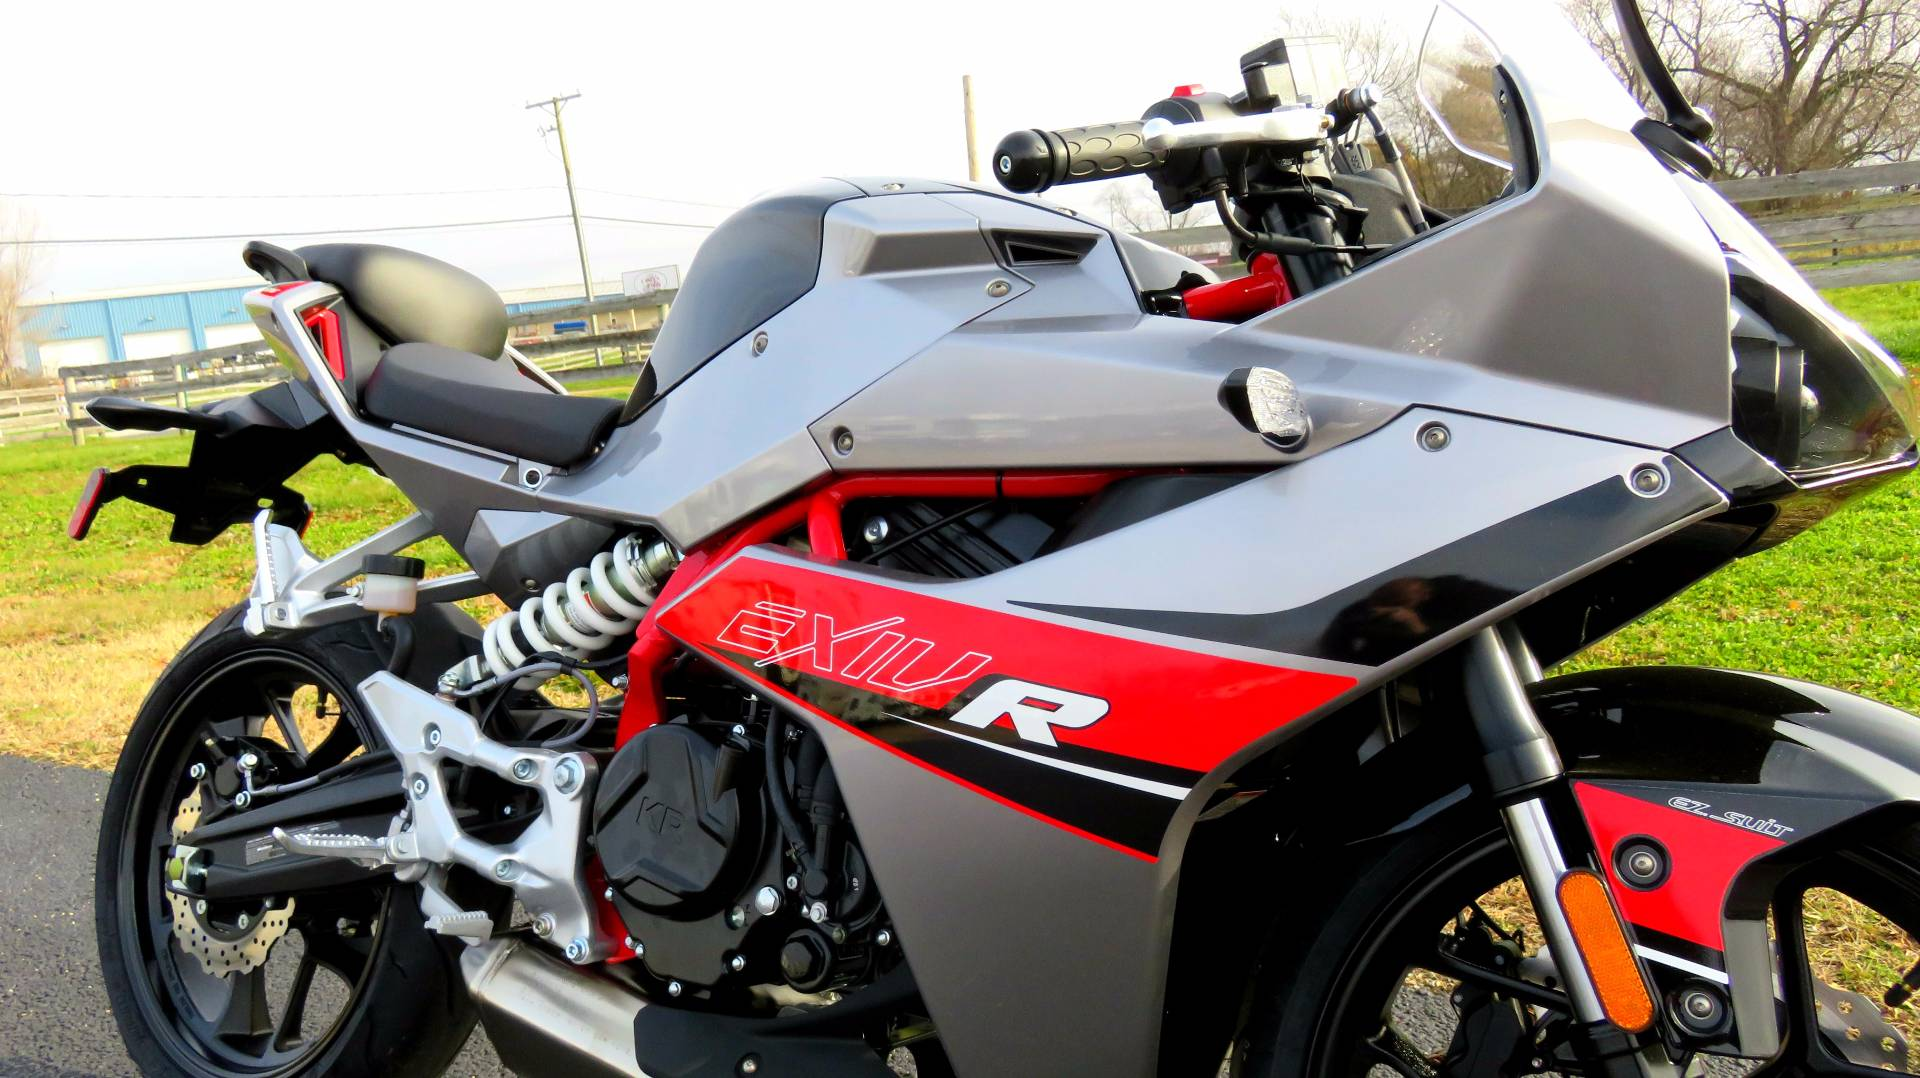 2017 Hyosung GD250R in Marengo, Illinois